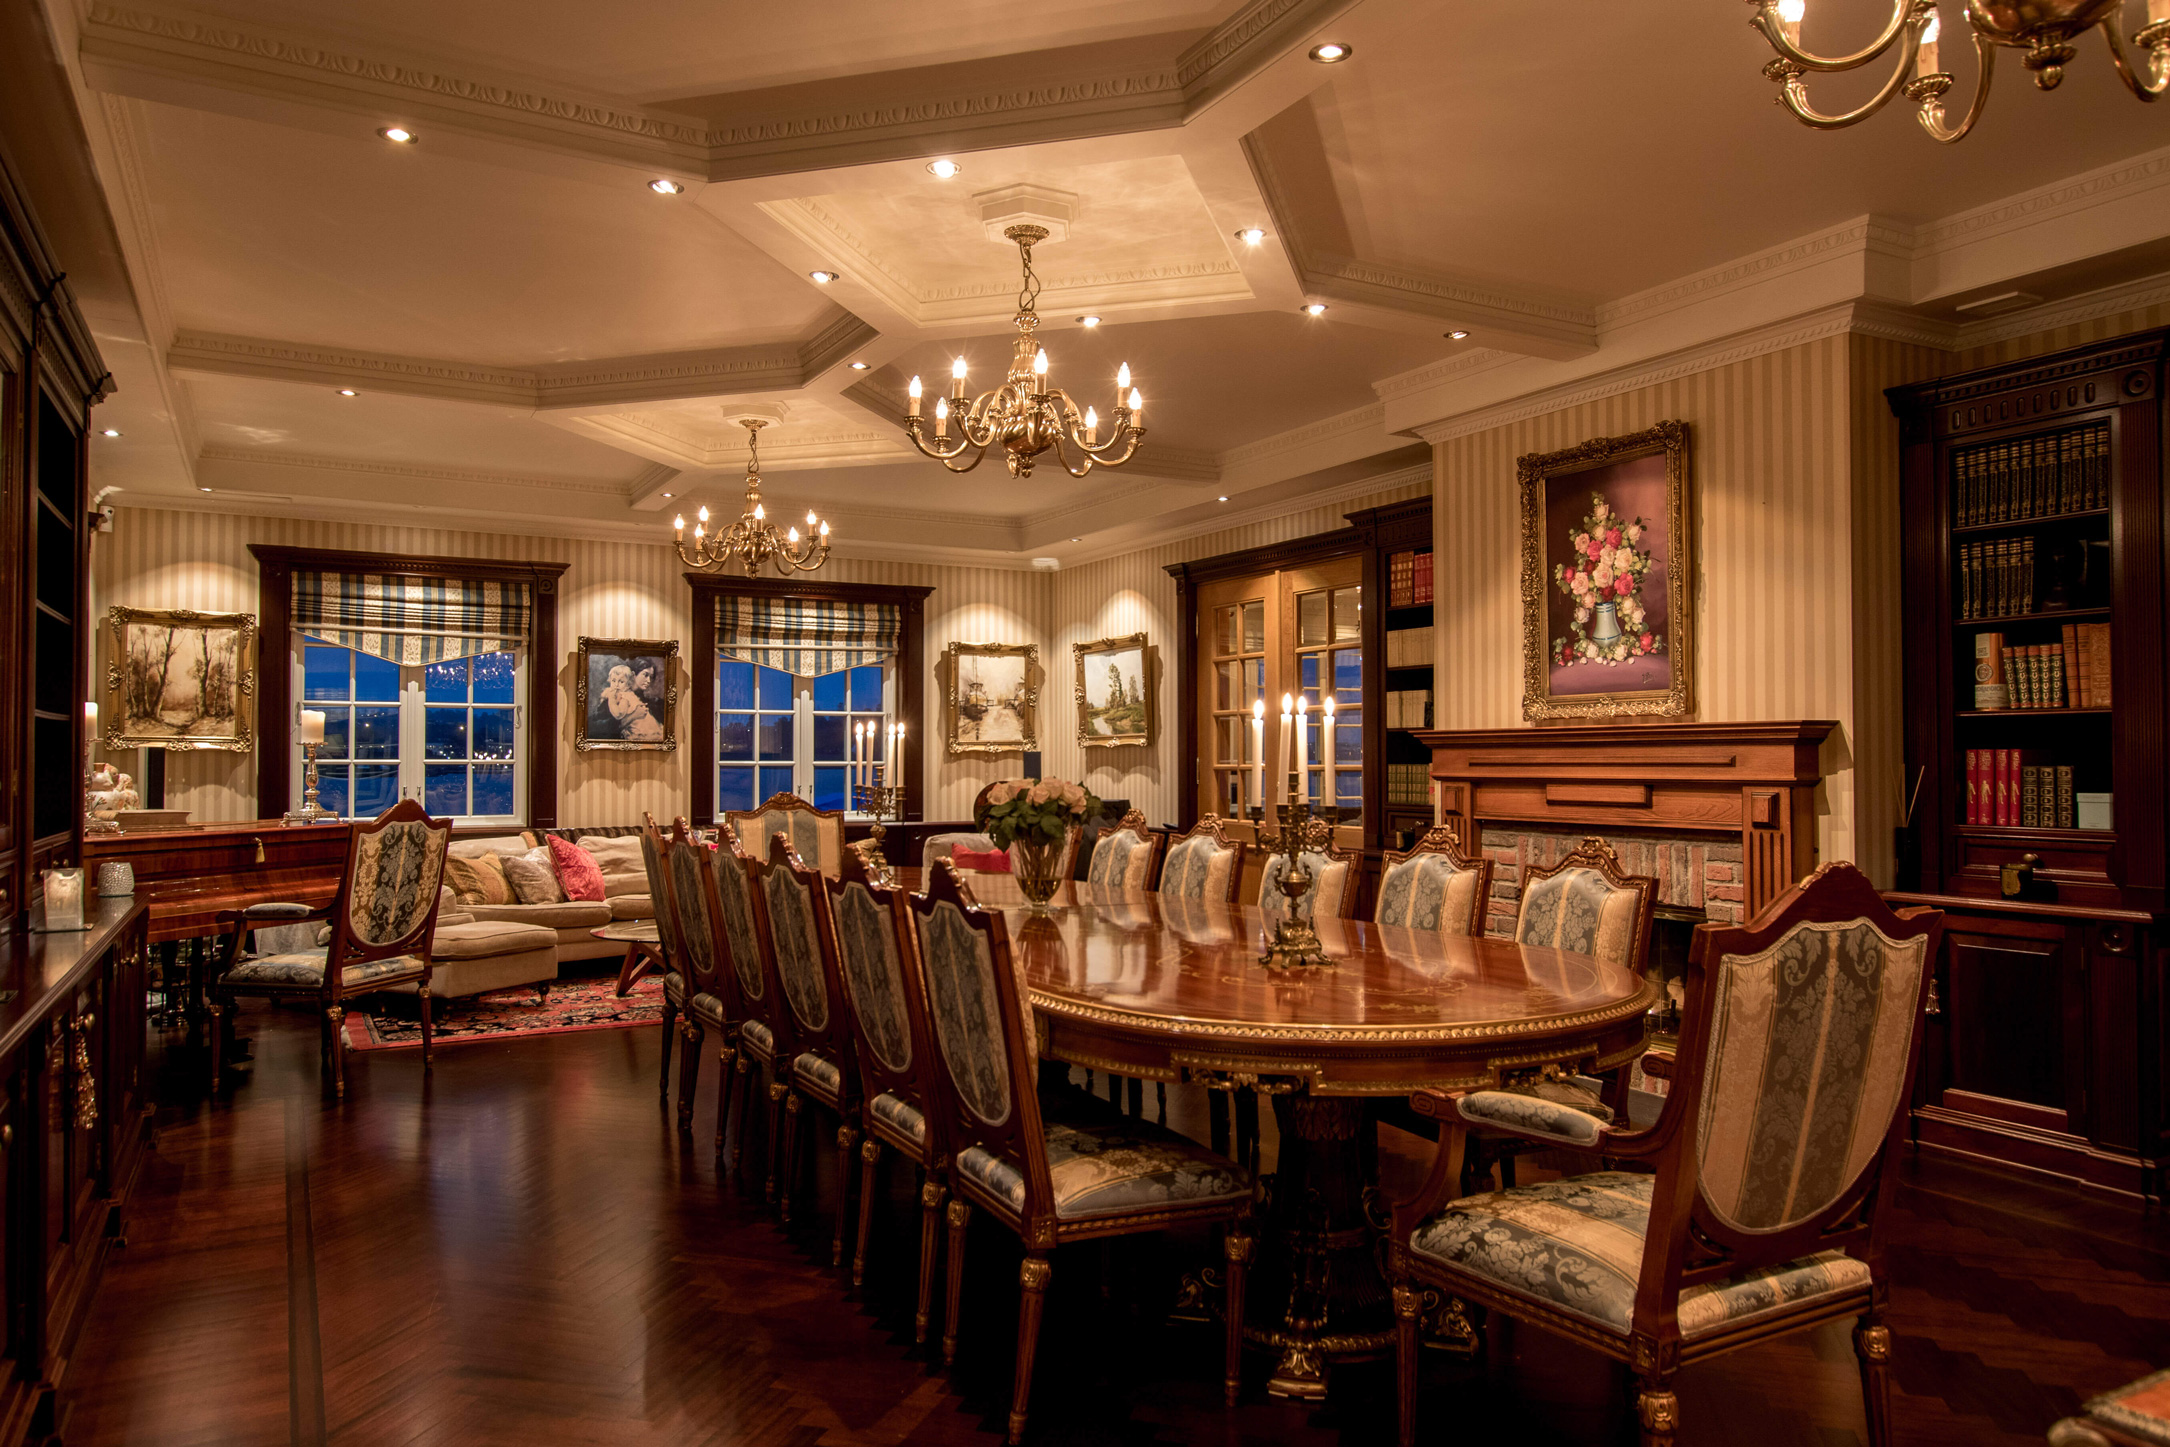 Wine, dine, entertain or invite business associates to a meeting in exceptional surroundings.